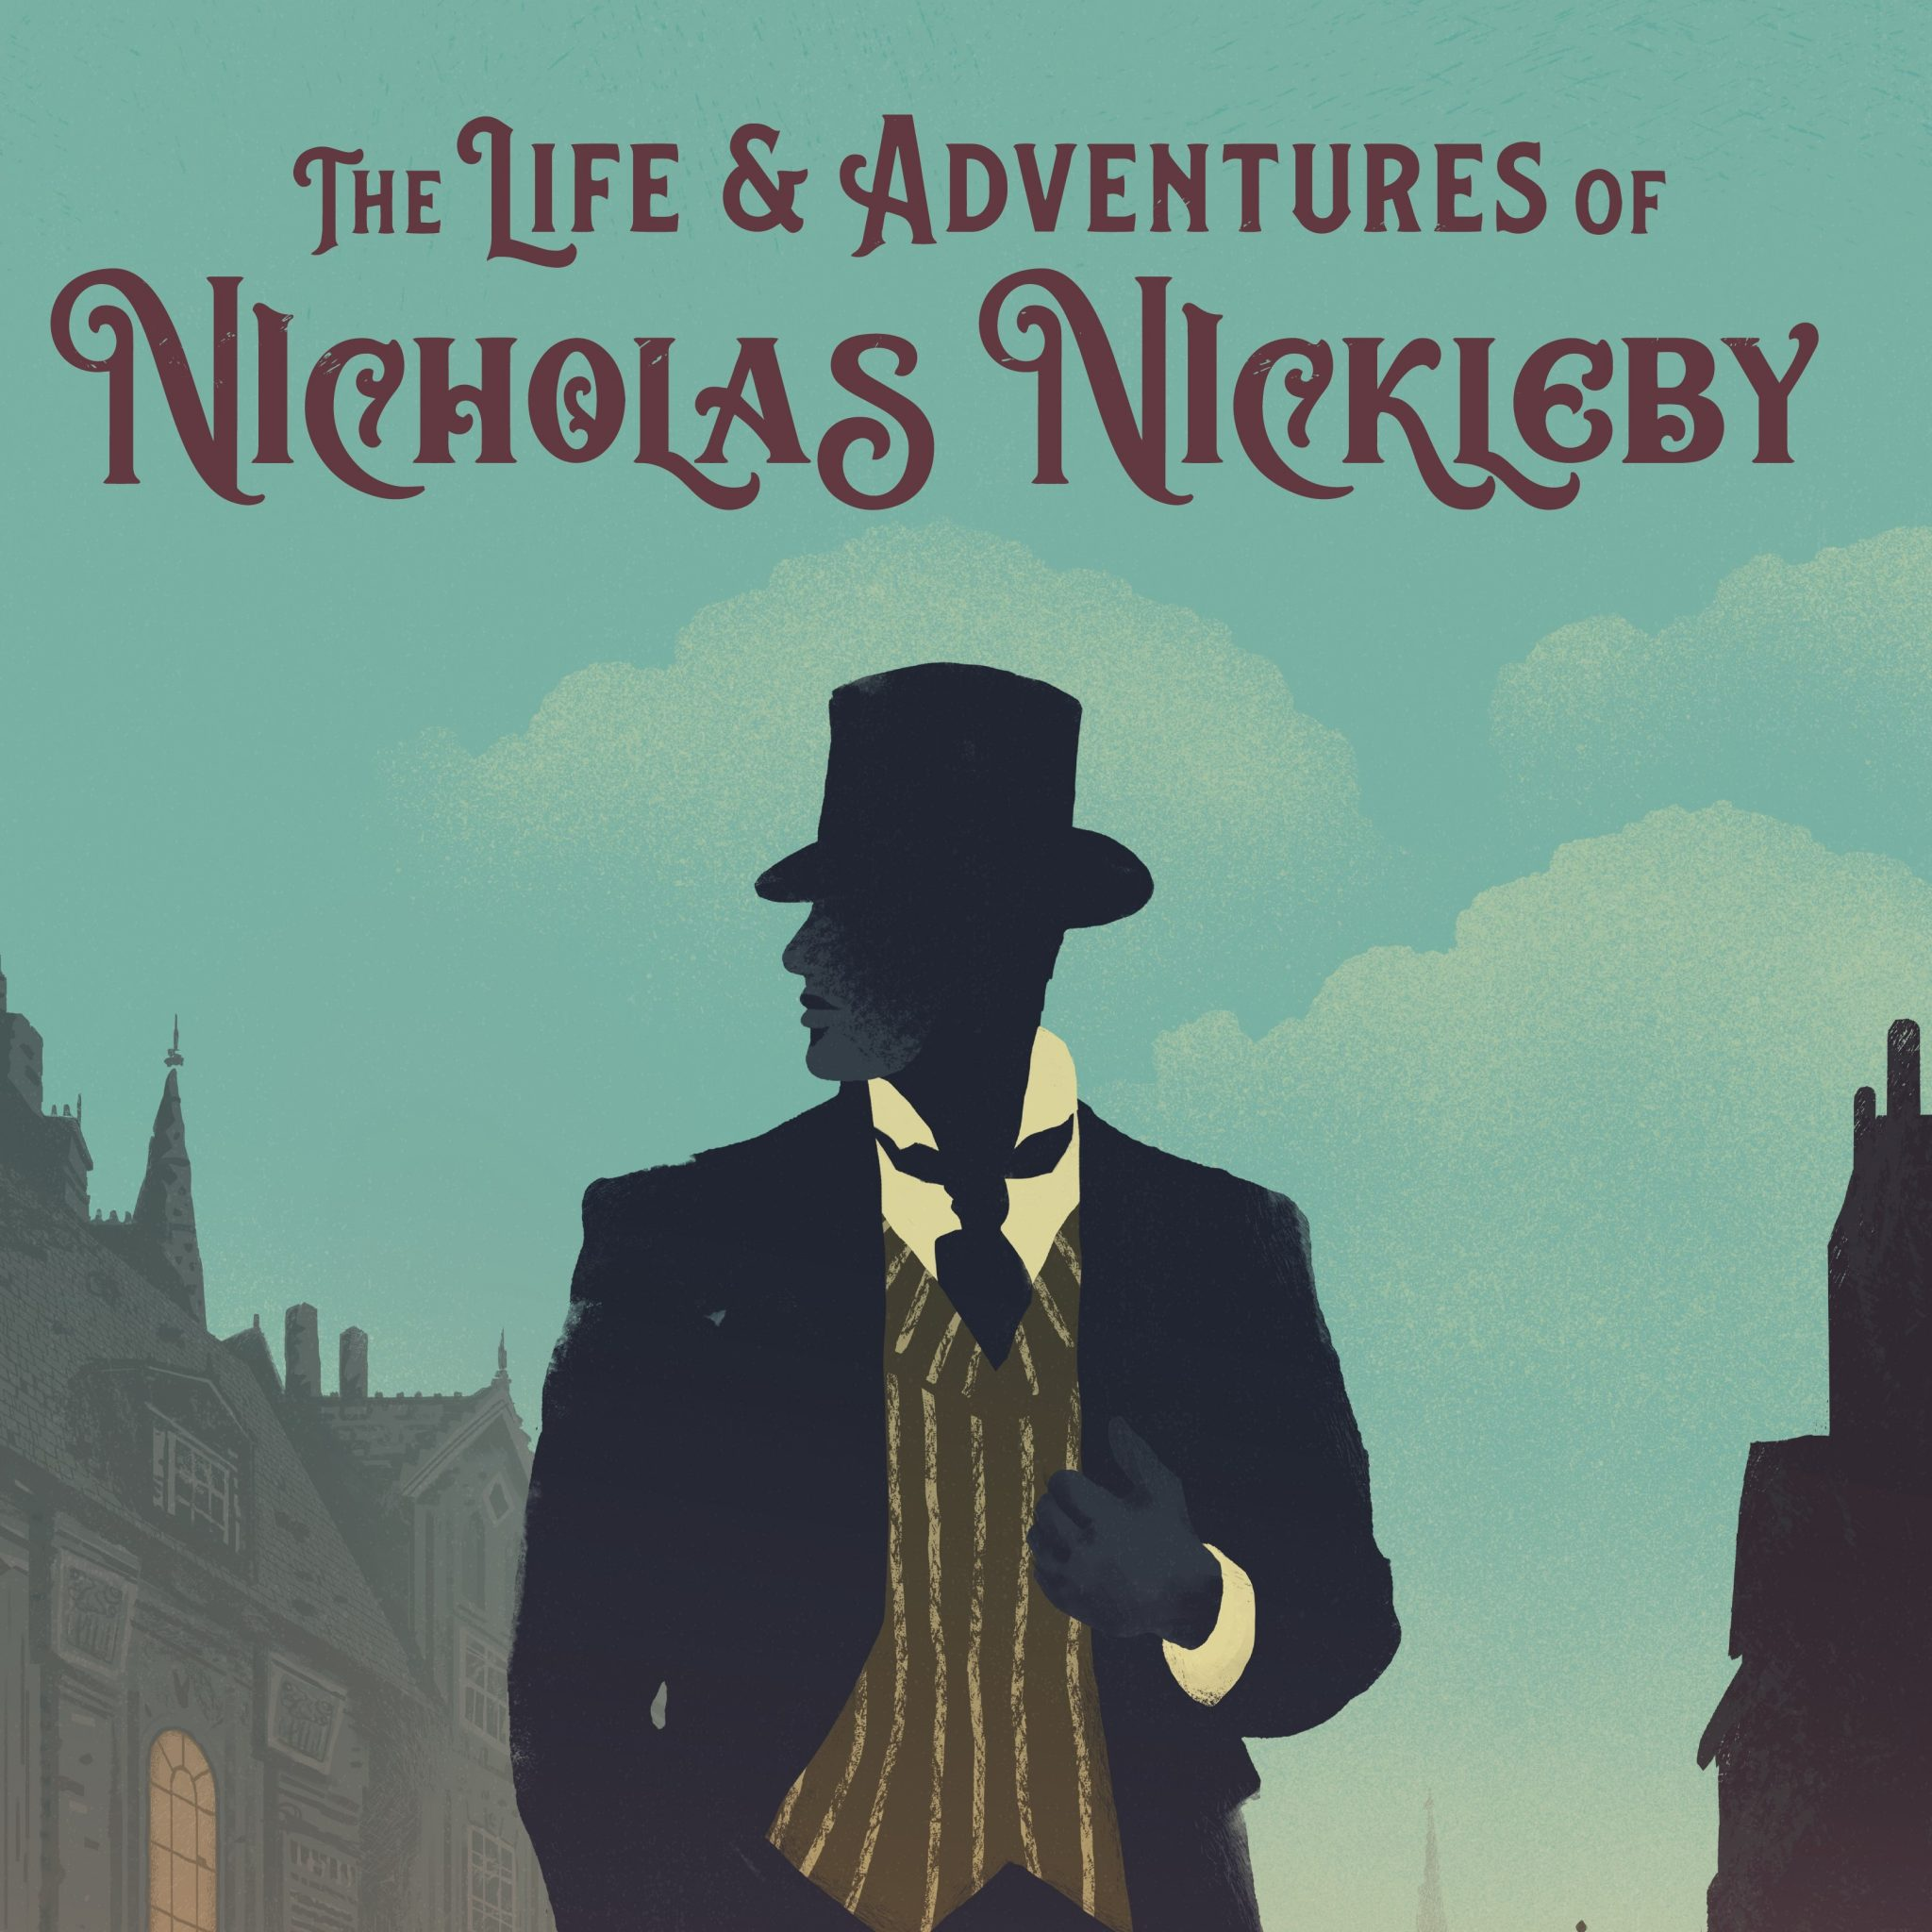 Image result for the adventures of nicholas nickleby by charles dickens